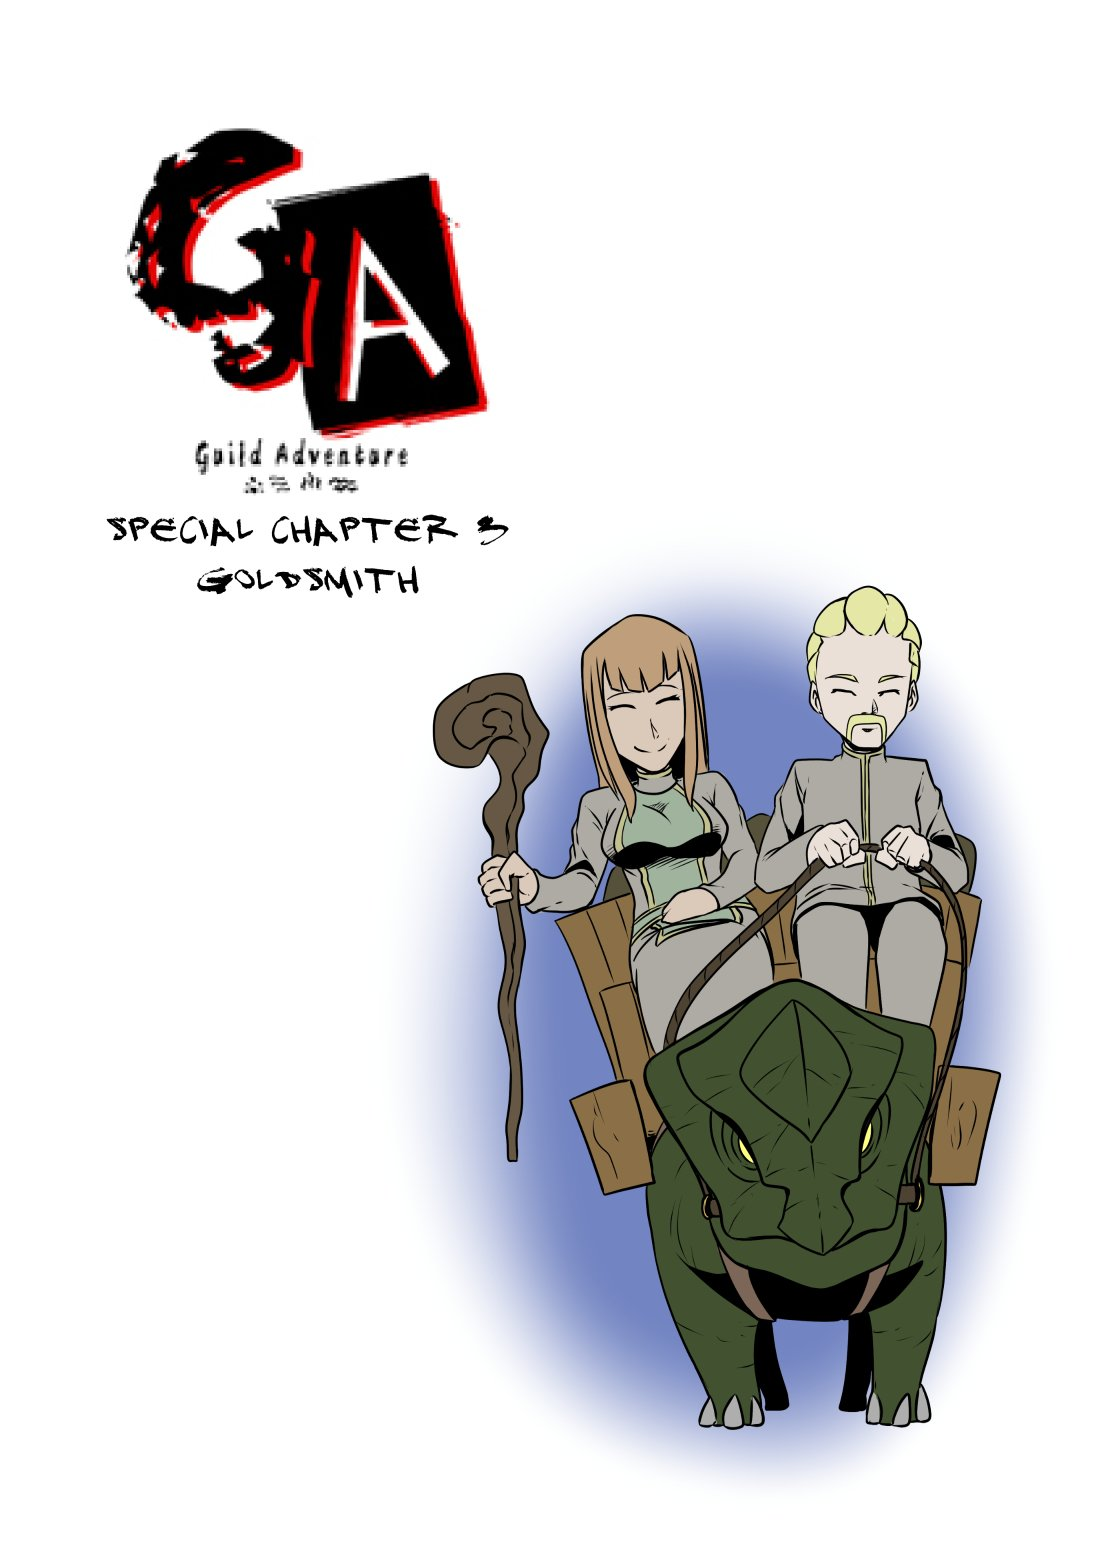 Special chapter 3 cover